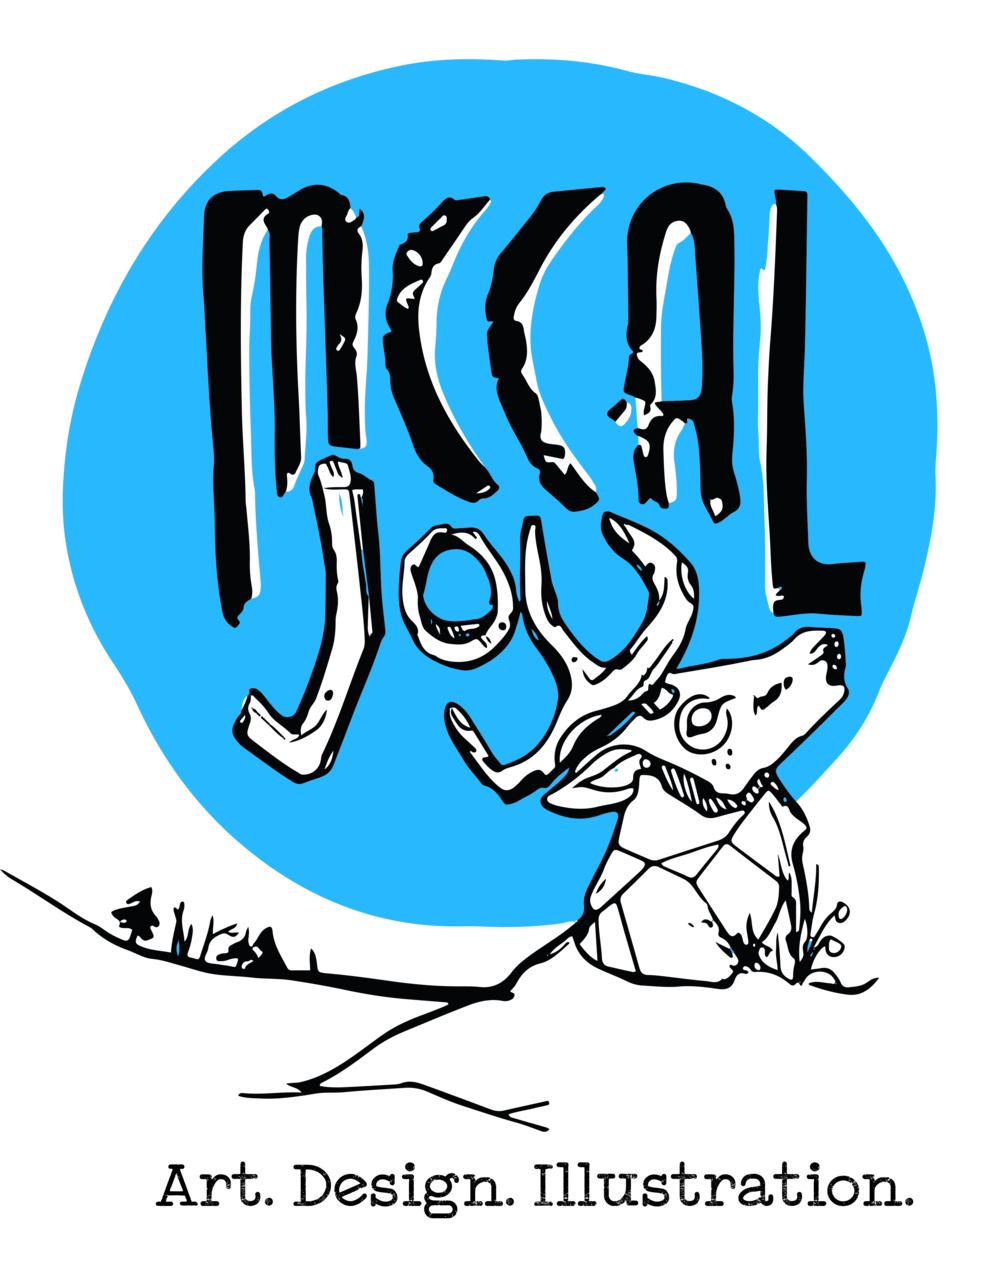 McCal Joy Logo - and finally came time to finally revise my own logo from the old ink smeared wood block scan that it once was, by incorporating some nature and illustrative touch while retaining the rustic charm of the old letters.